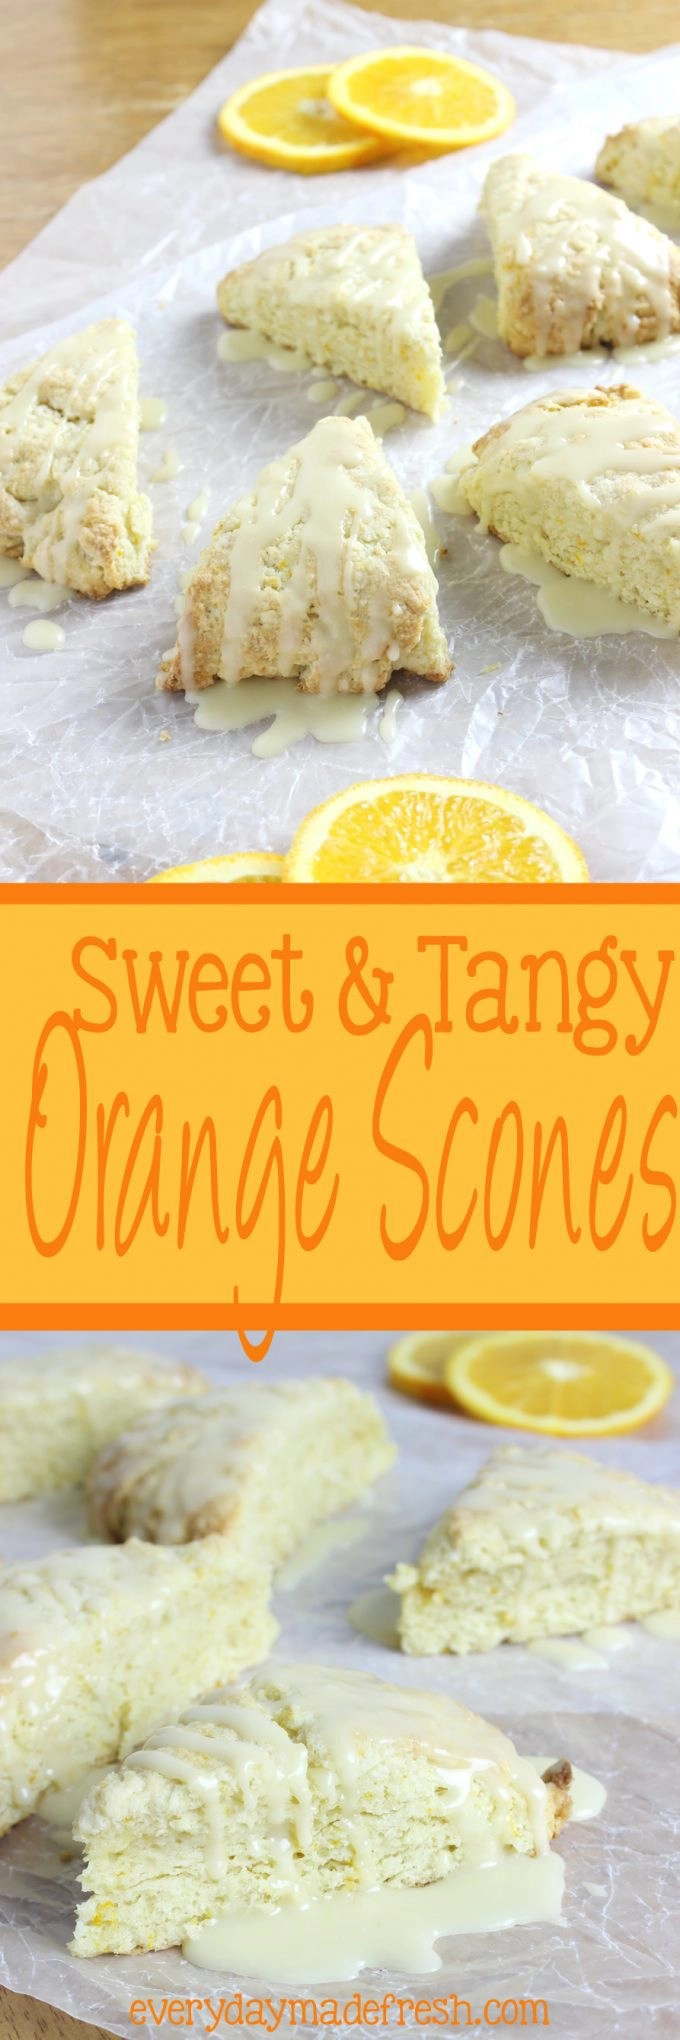 These Sweet & Tangy Orange Scones are studded with zest and bursting with fresh orange flavor!   EverydayMadeFresh.com